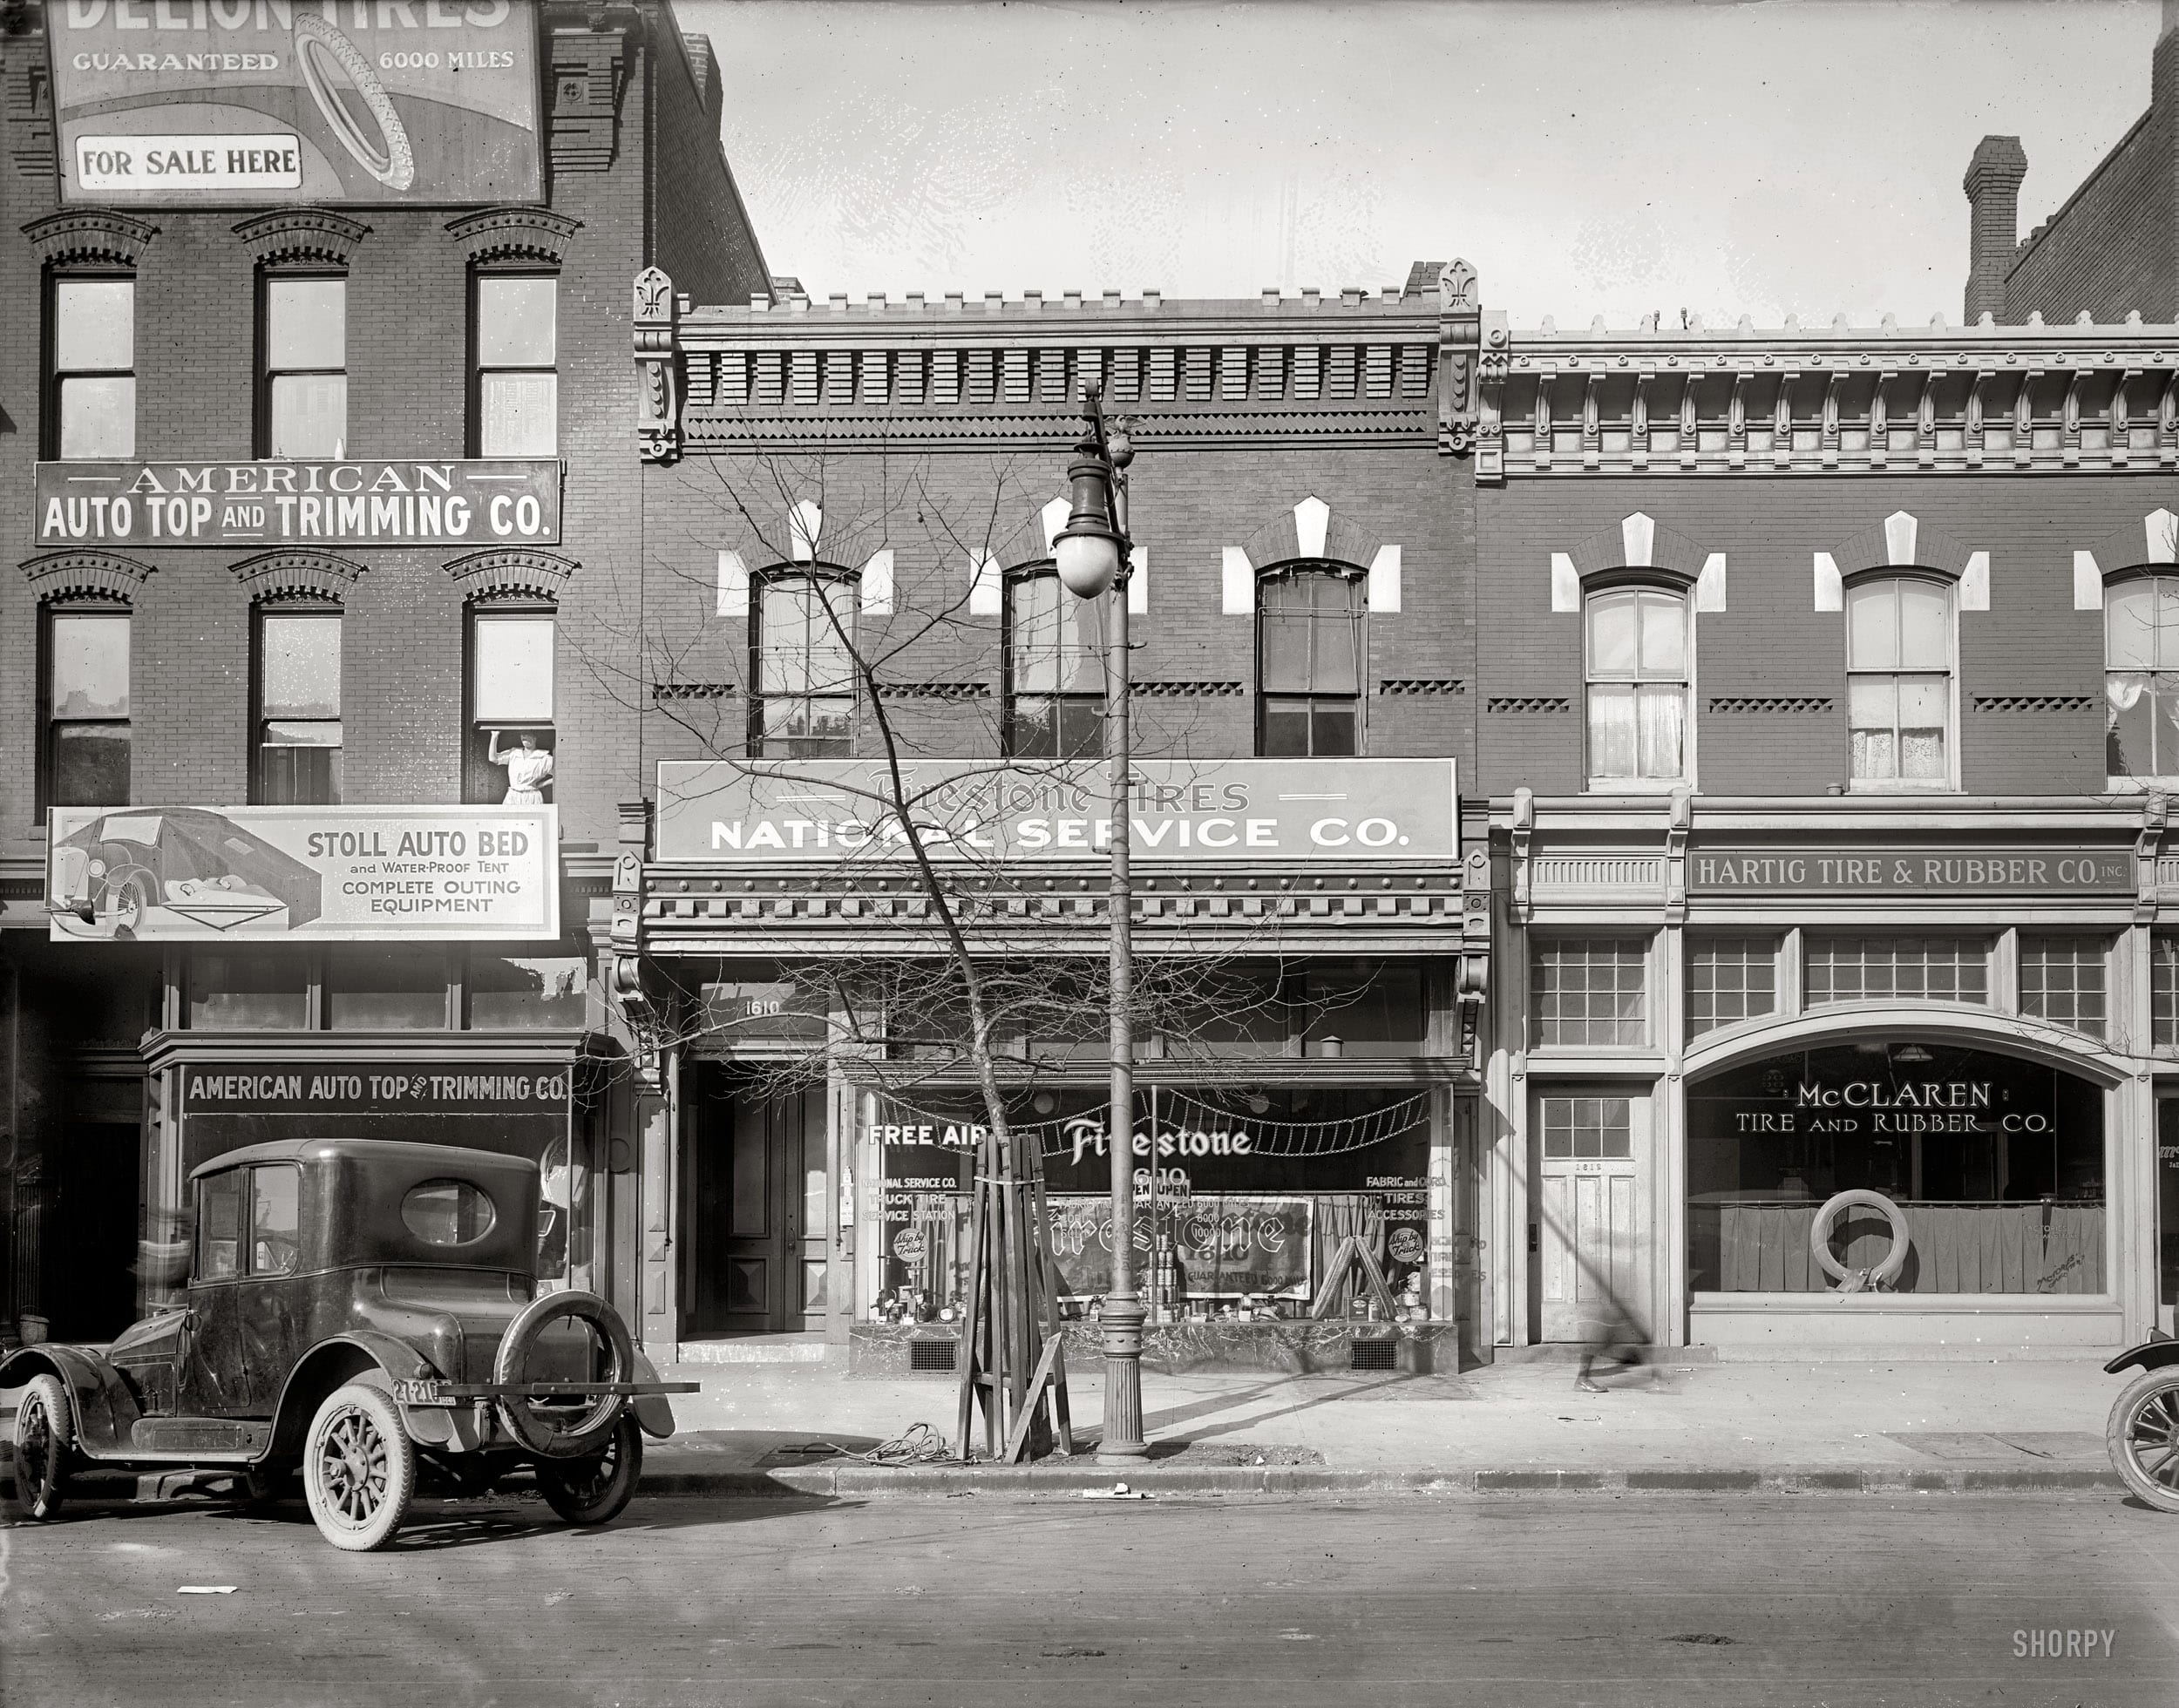 14th St. Buildings in 1920 Before Pearl Dive, Ghibellina, and Rice